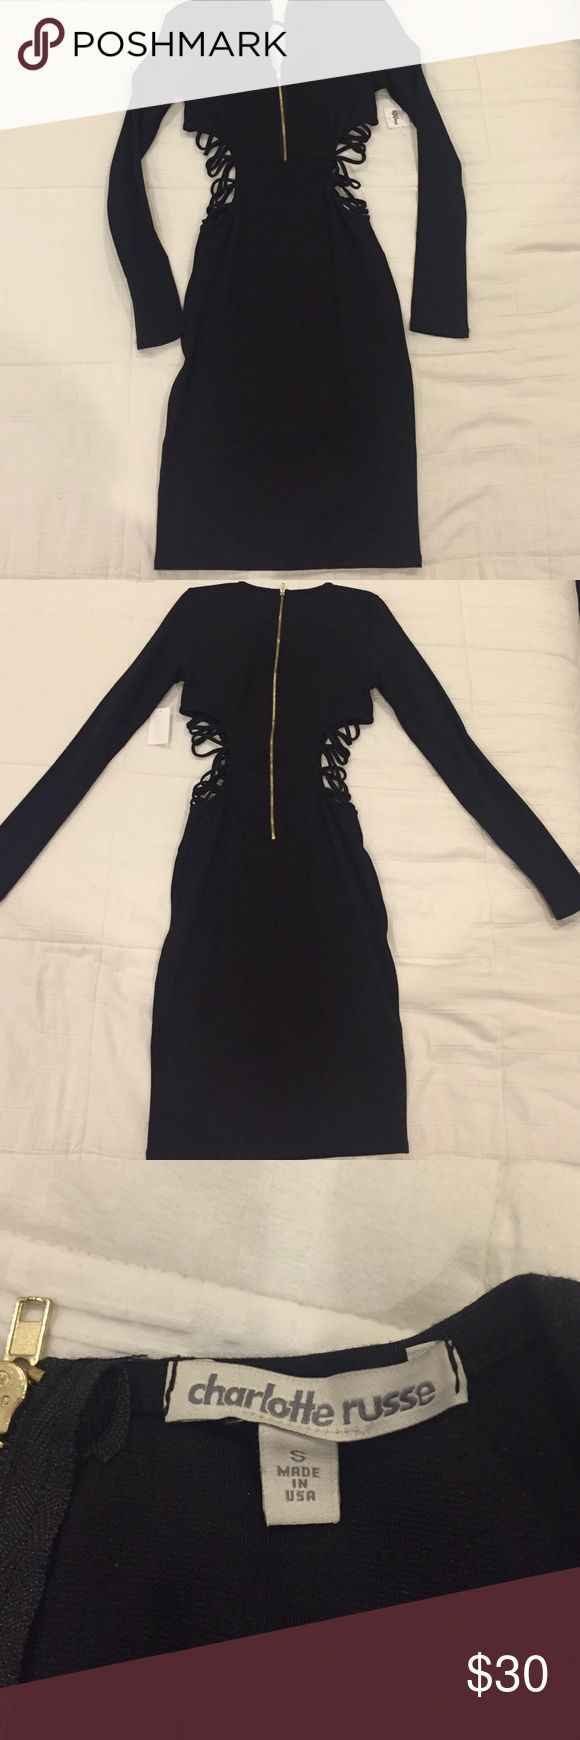 Deep v neck black dress Deep v neck black dress over the knee gold zipper in back and side cutouts very sexy brand new with tags never worn Dresses